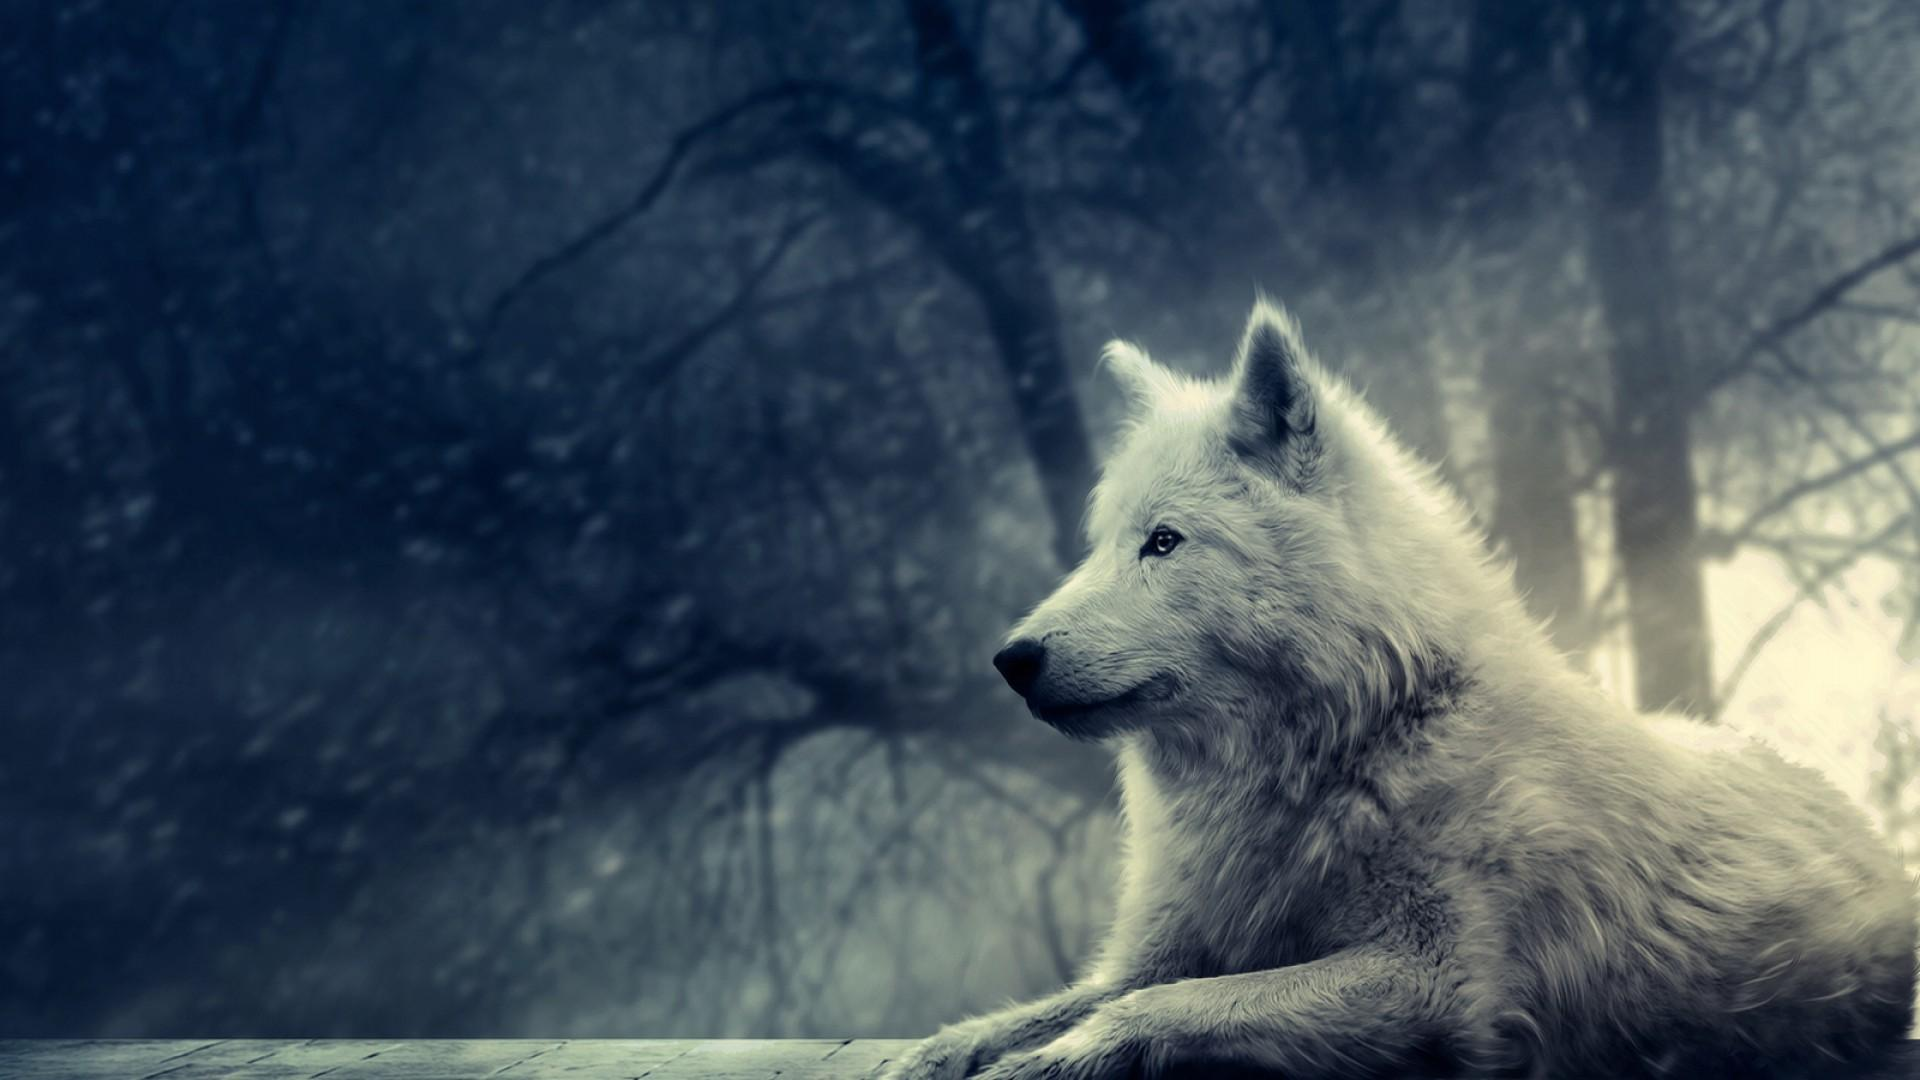 47] Awesome Wolf Wallpapers on WallpaperSafari 1920x1080